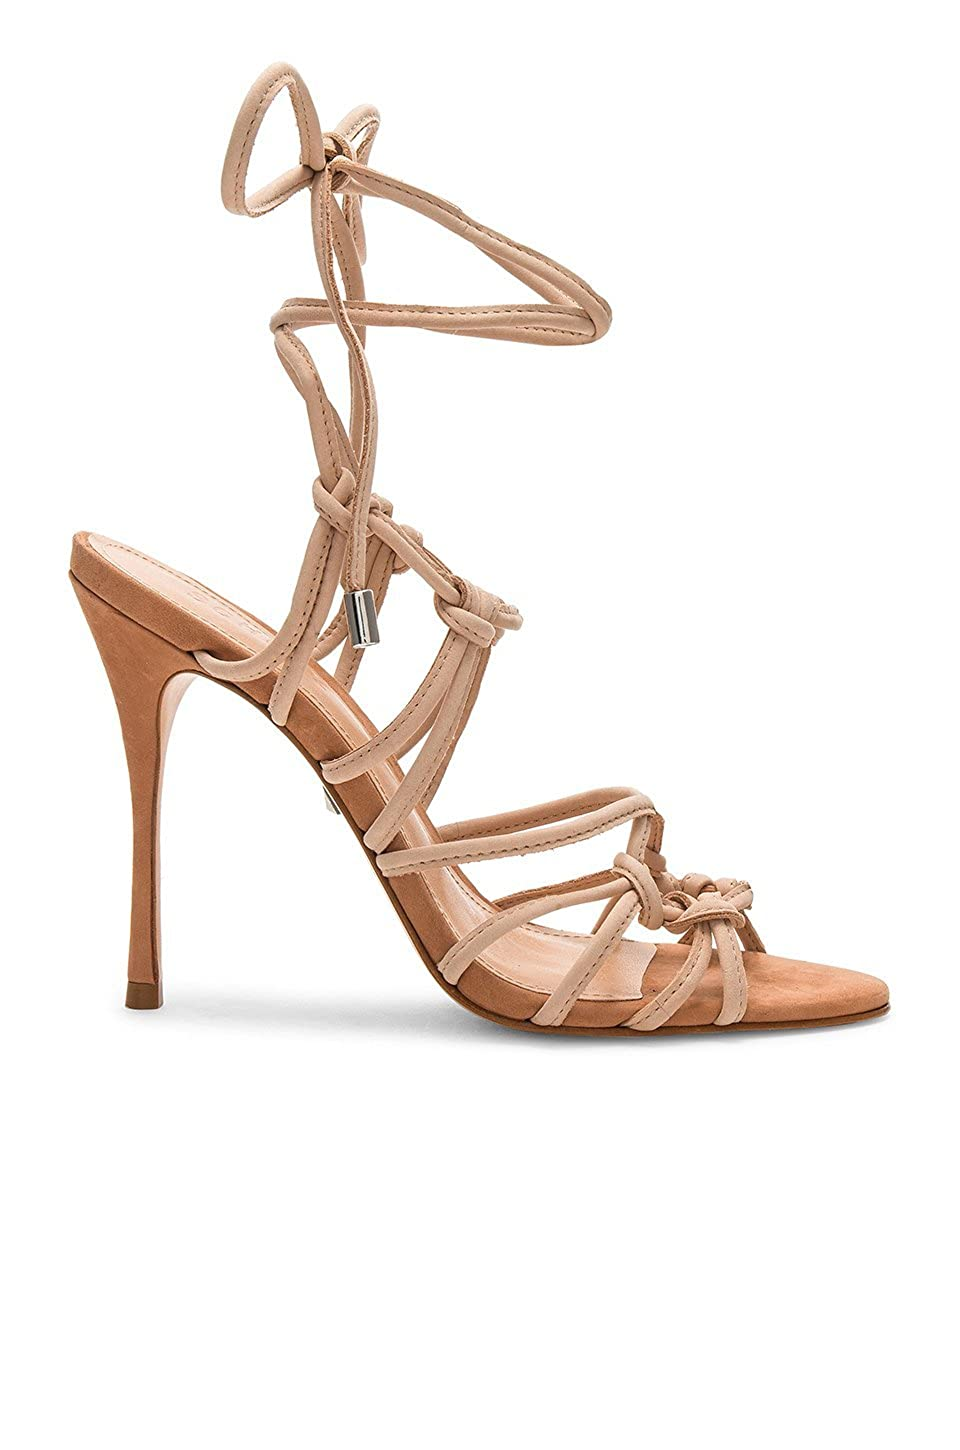 SCHUTZ Gleyce New Tanino Tan Brown Leather Wrap Ankle Tie Strappy Heel Sandals